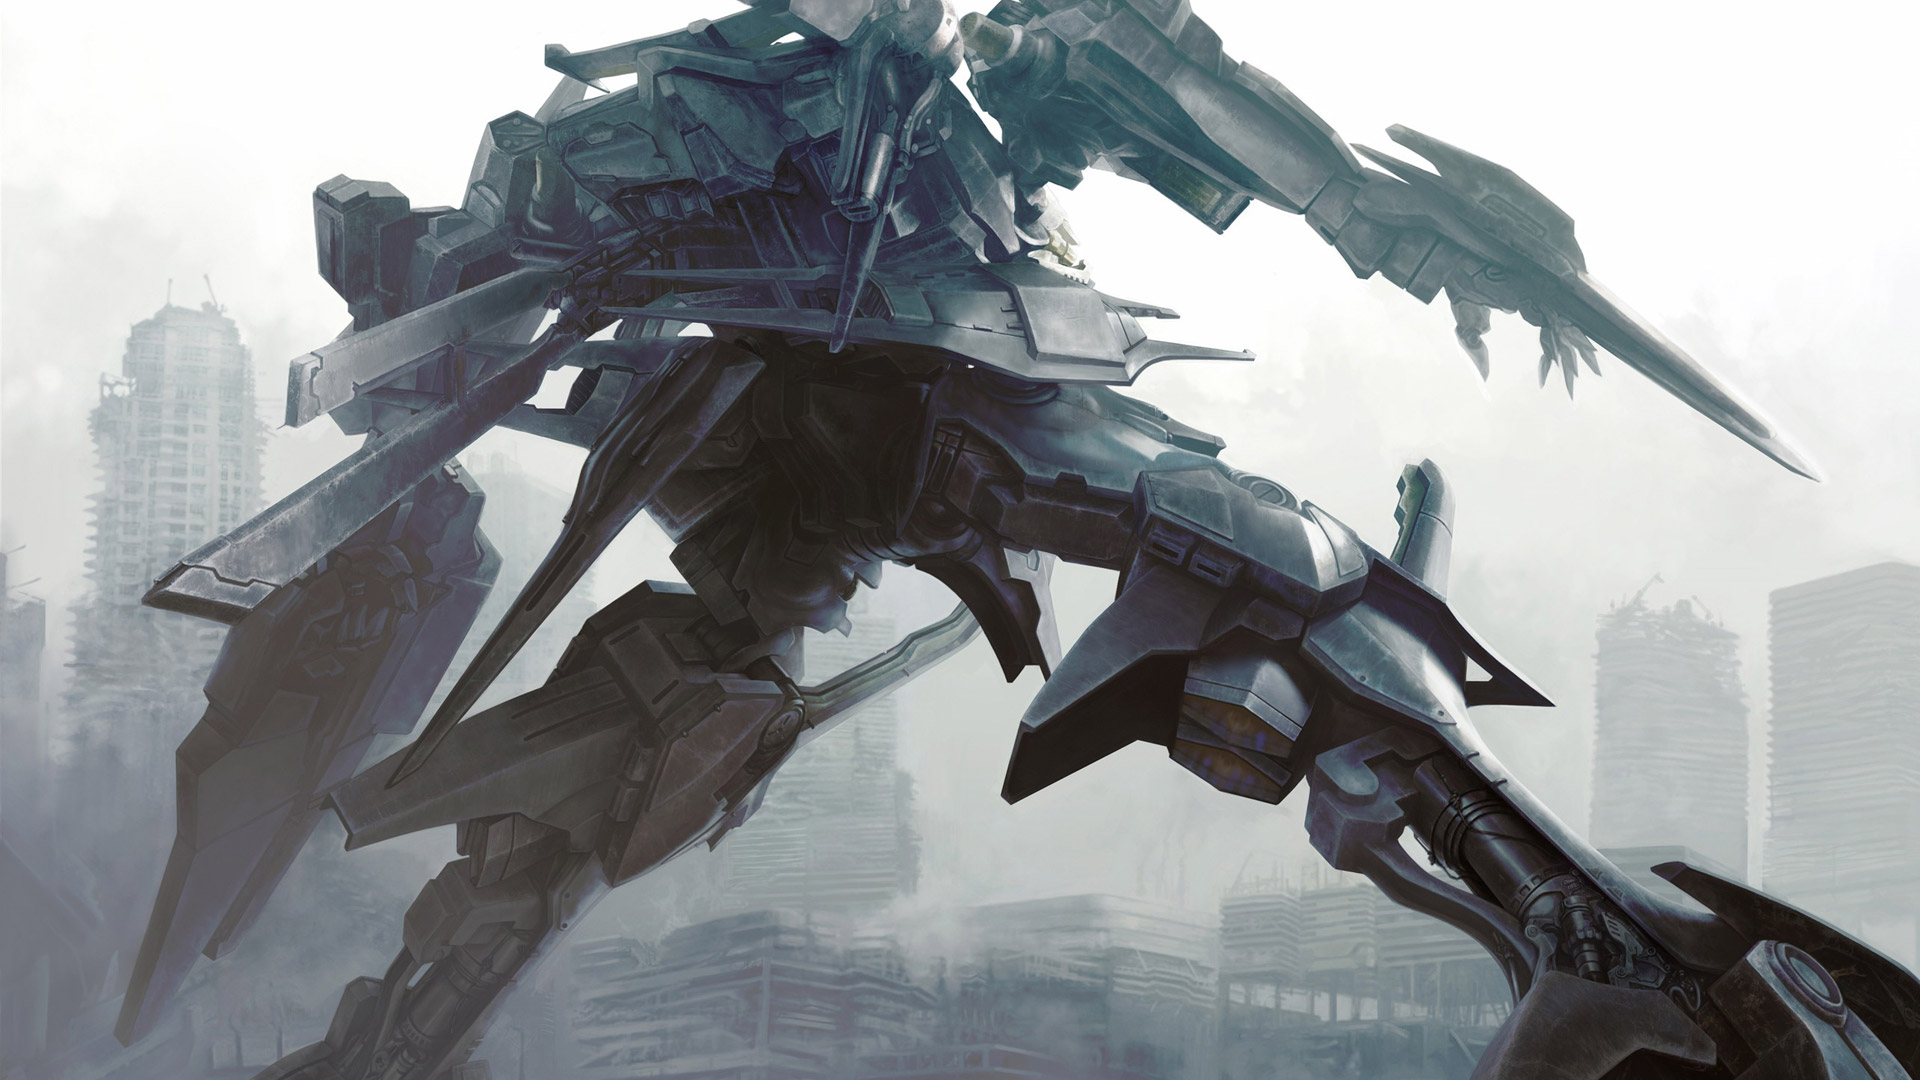 Free Armored Core 4 Wallpaper in 1920x1080